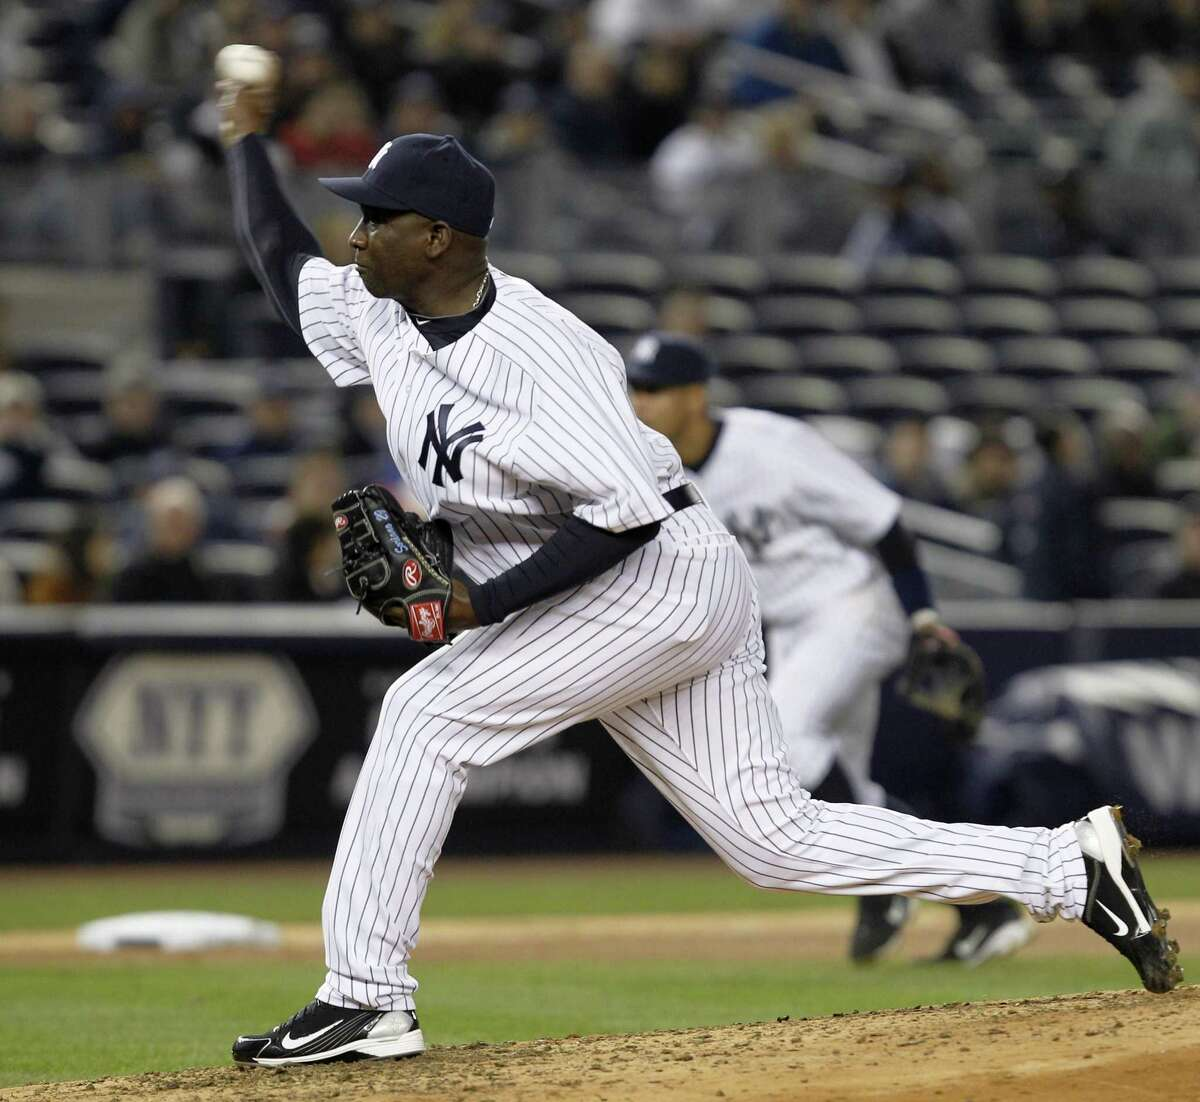 New York Yankees relief pitcher Rafael Soriano delivers in the eighth inning of the Yankees' 4-3 victory over the Minnesota Twins in a baseball game at Yankee Stadium in New York, Monday, April 4, 2011. (AP Photo/Kathy Willens)